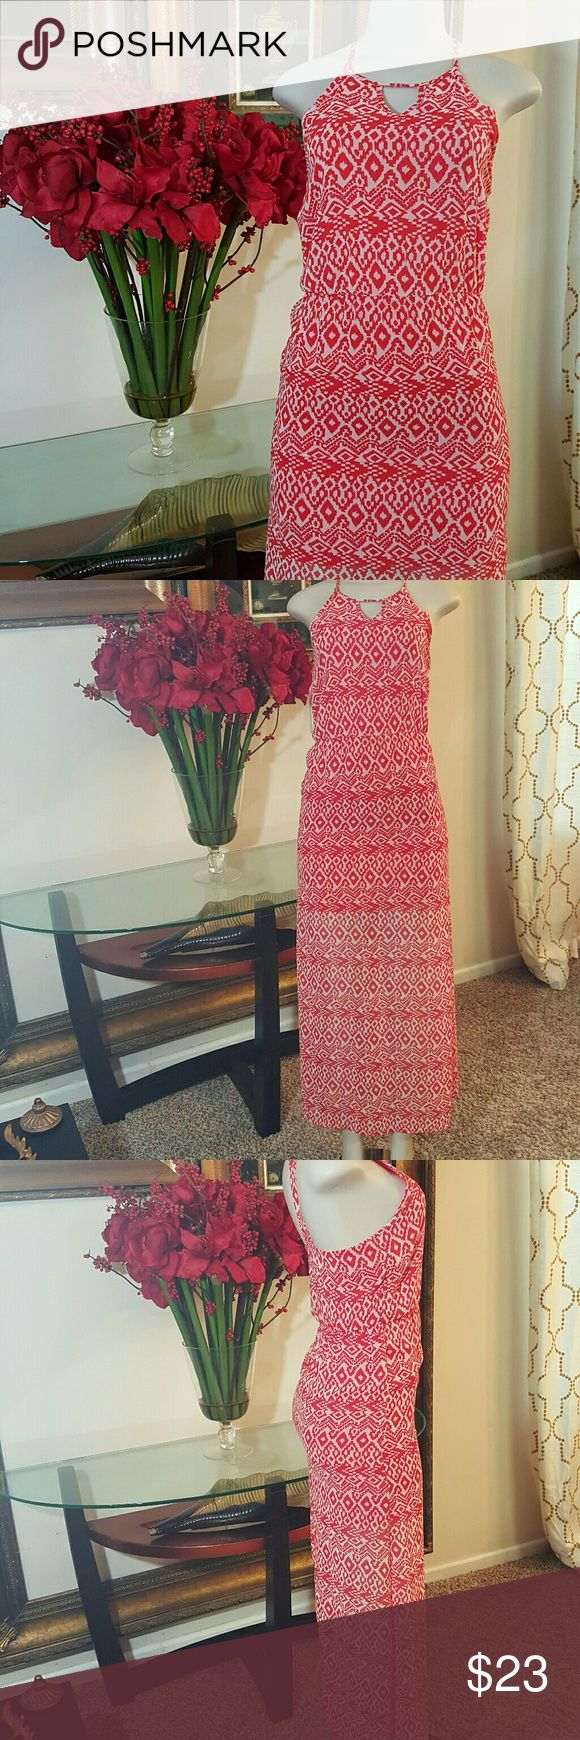 Gianni Bini (GB) Coral Maxi Dress size XS Gianni Bini (GB) Sheer Long Dress size XS in great condition please see pictures for overall condition  Offers Welcome.   Coral and White Gianni Bini Dresses Maxi